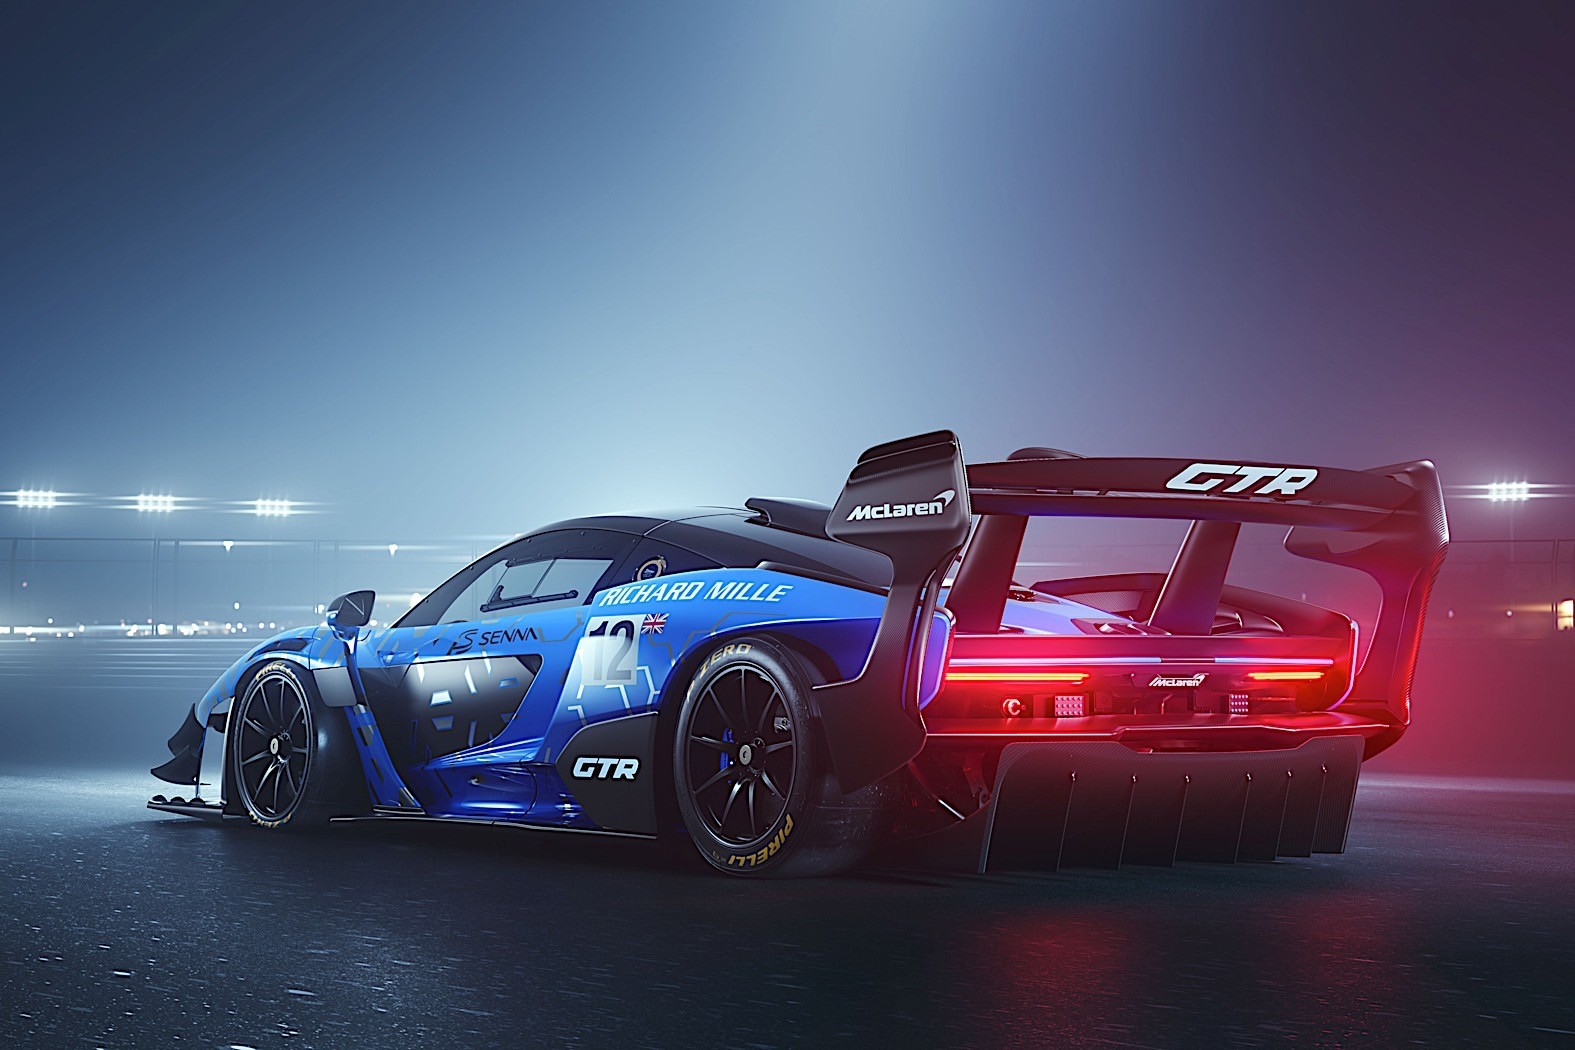 Fastest Car In The World Wallpaper 2015 Mclaren Senna Gtr Ready To Take On Track Racing